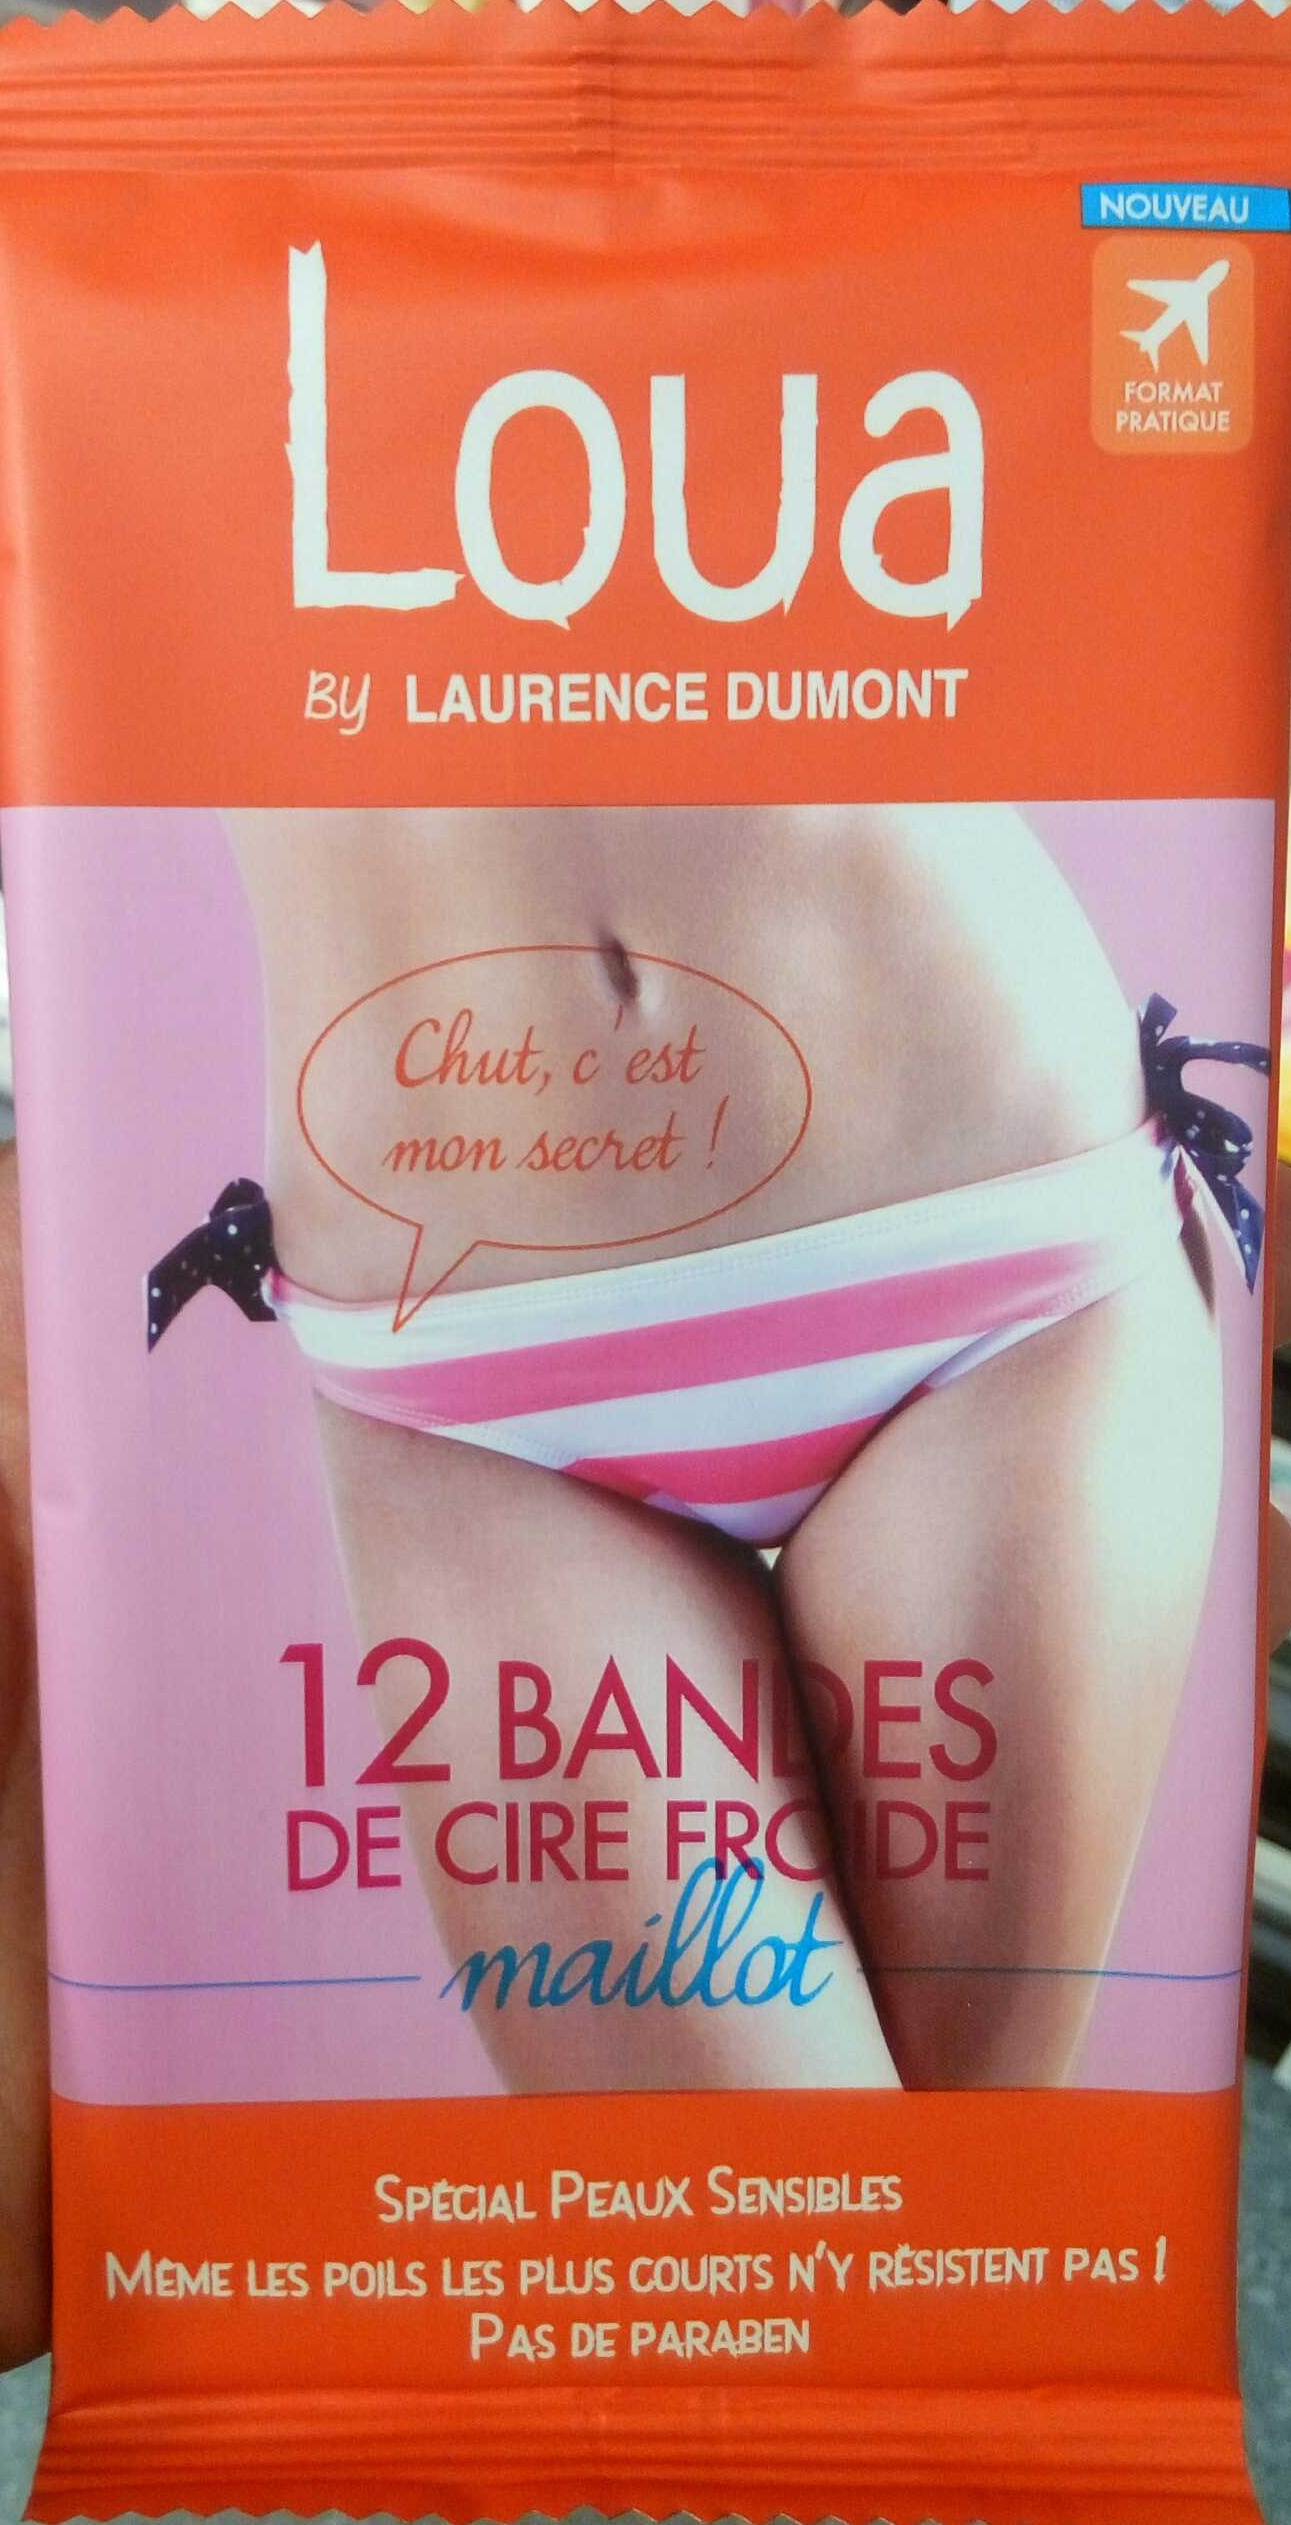 12 bandes de cire froide maillot - Product - fr